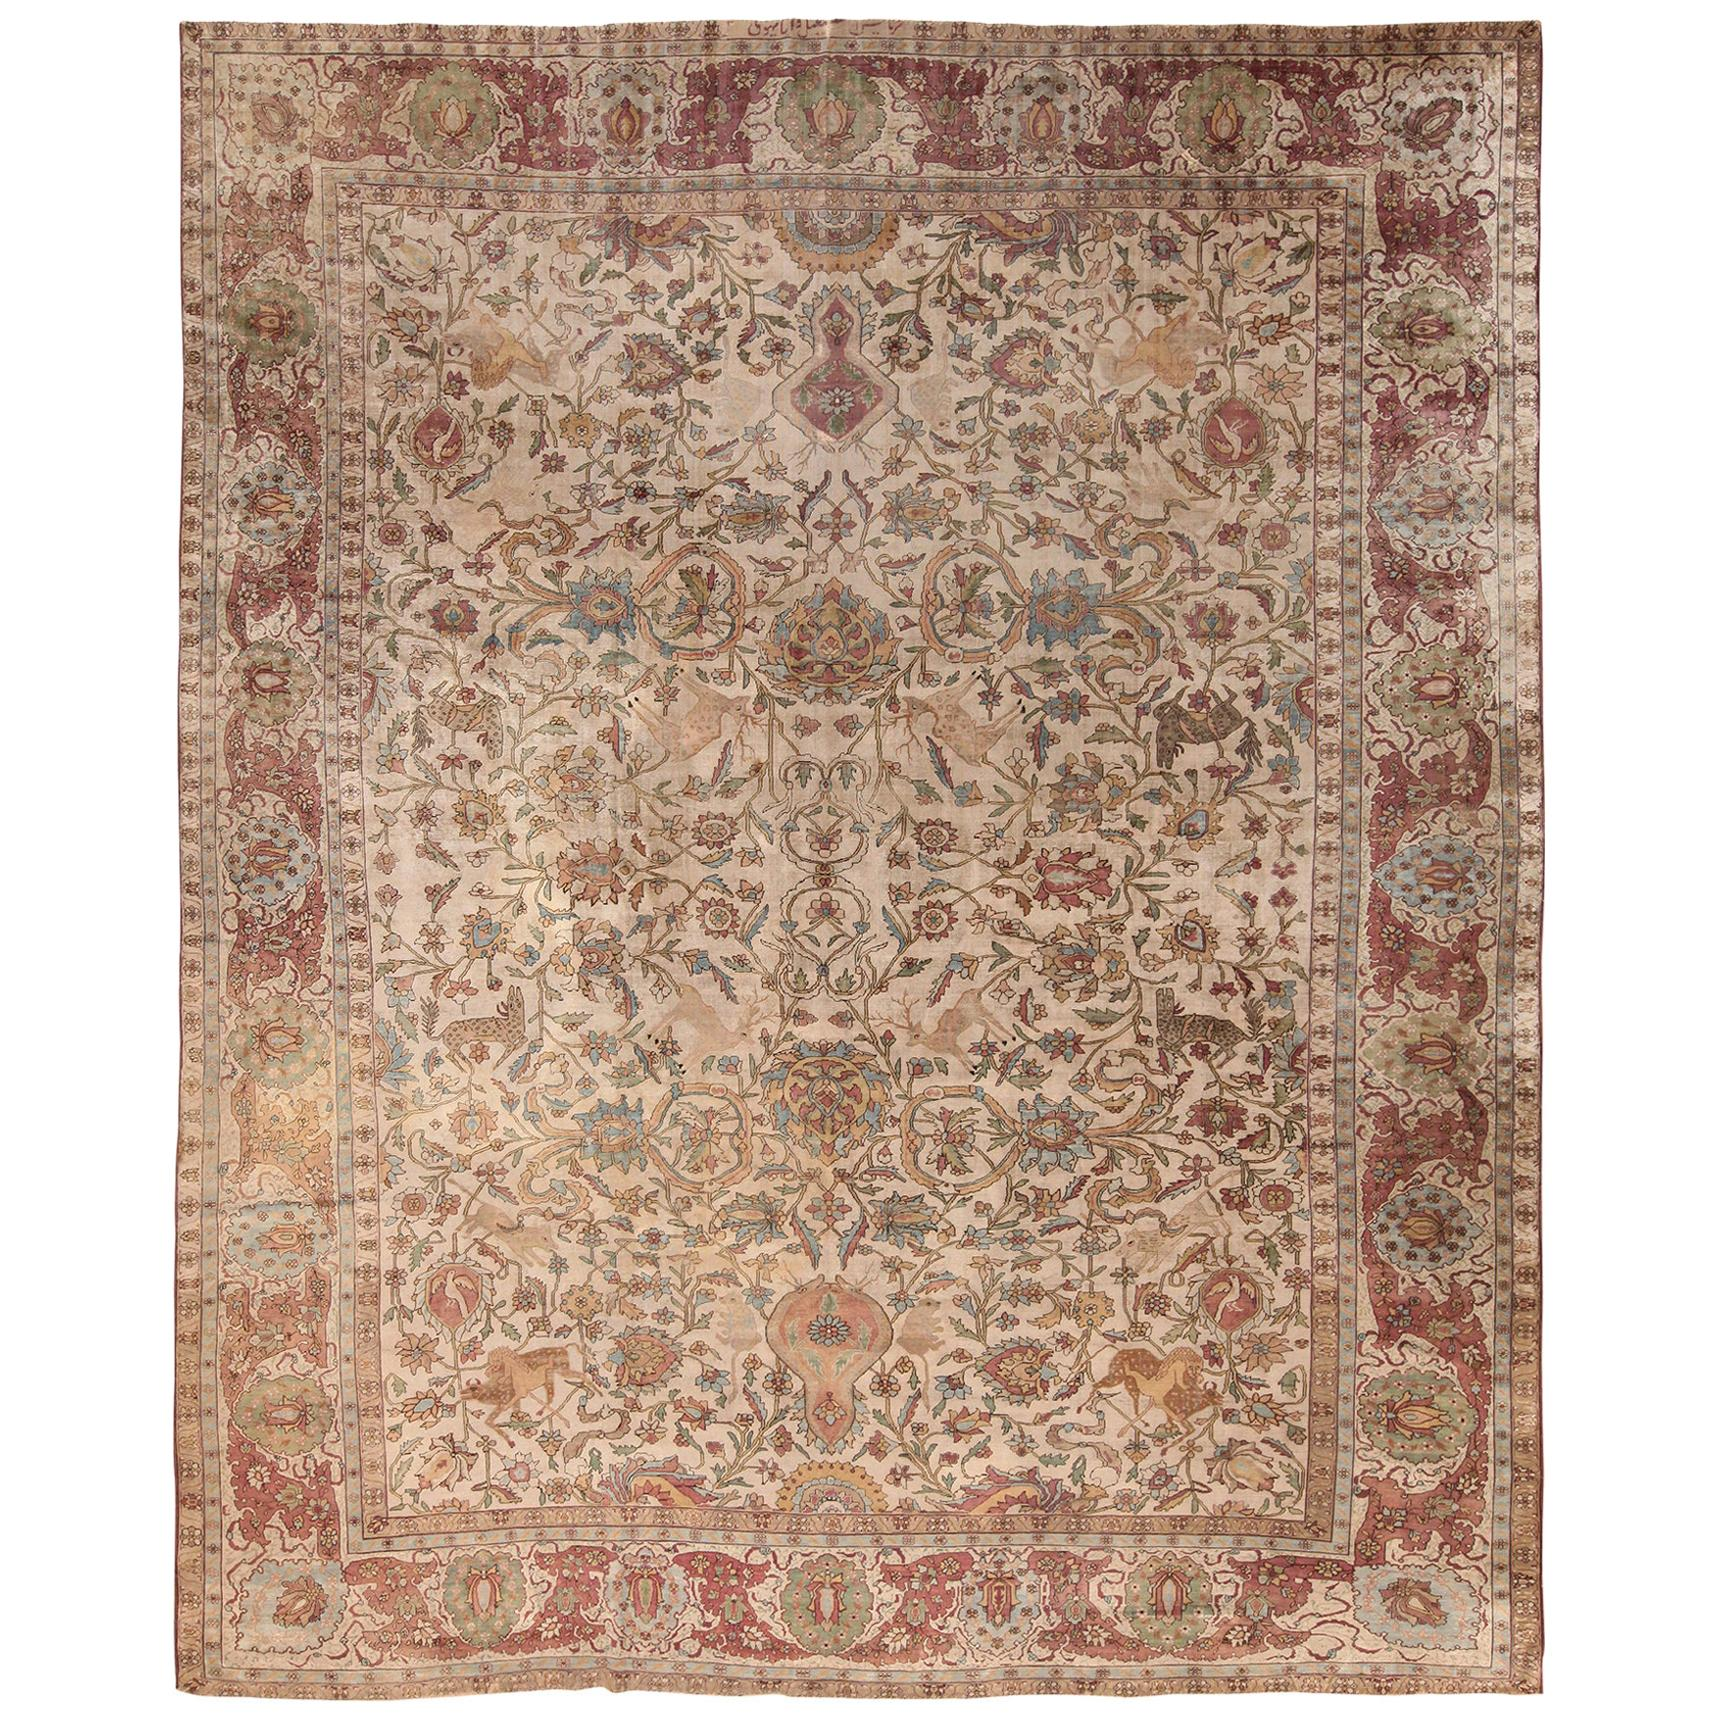 Silk Kashan Mohtashem Antique Persian Rug. Size: 10 ft. 7 in x 13 ft. 2 in